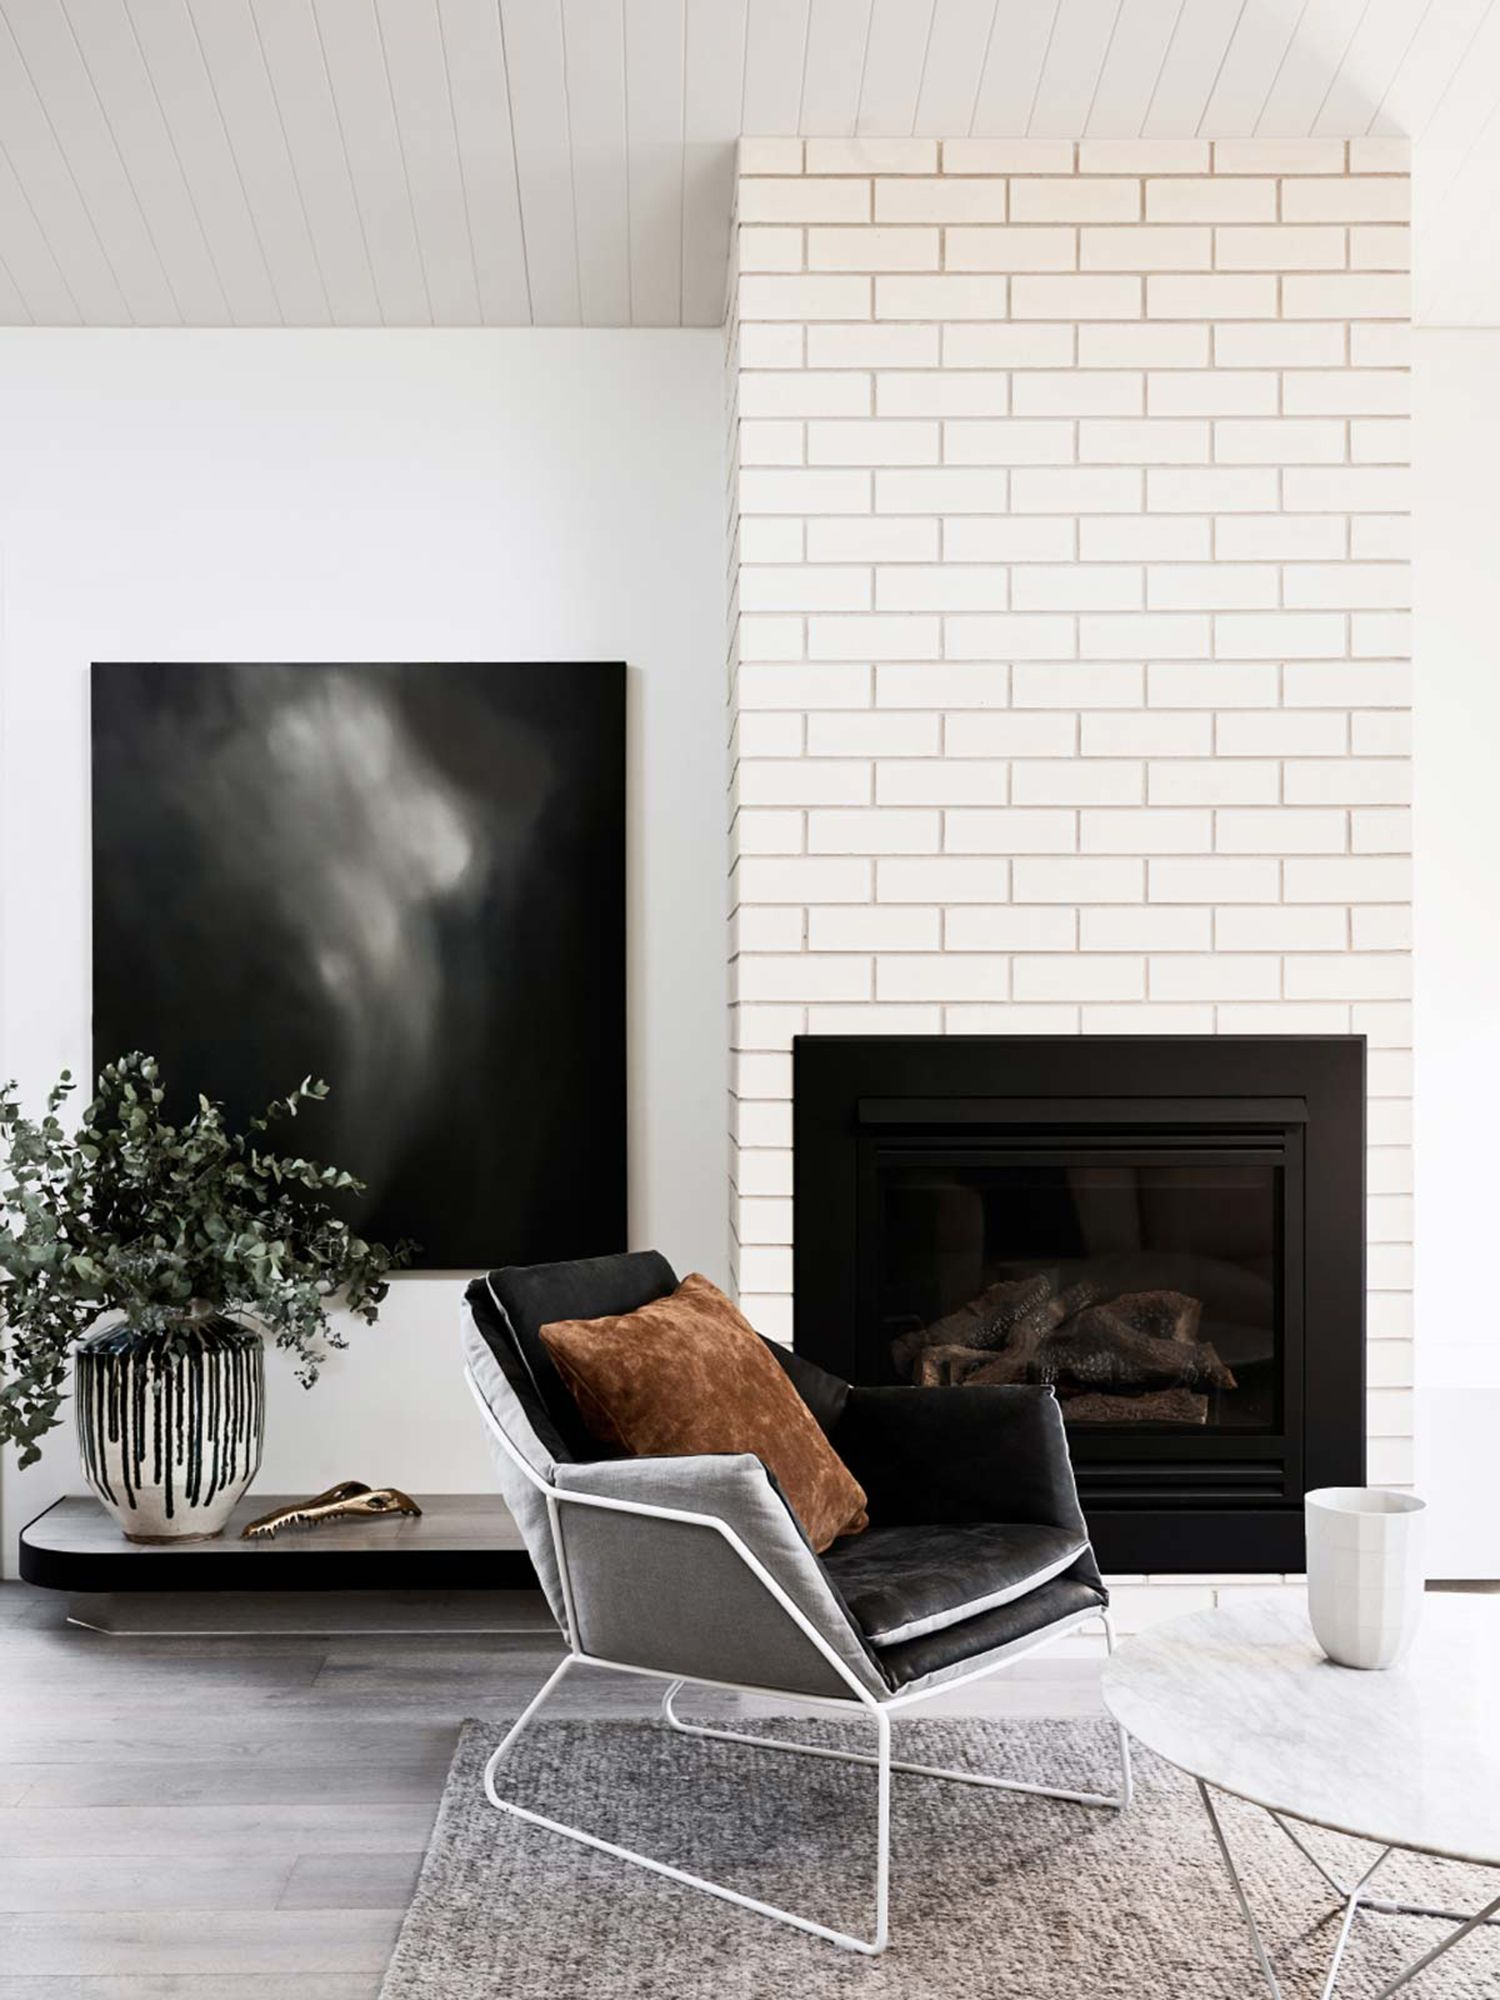 f54262280284d45da13a541d11df481f Top Result 50 Awesome Modern Outdoor Fireplace Picture 2018 Gst3